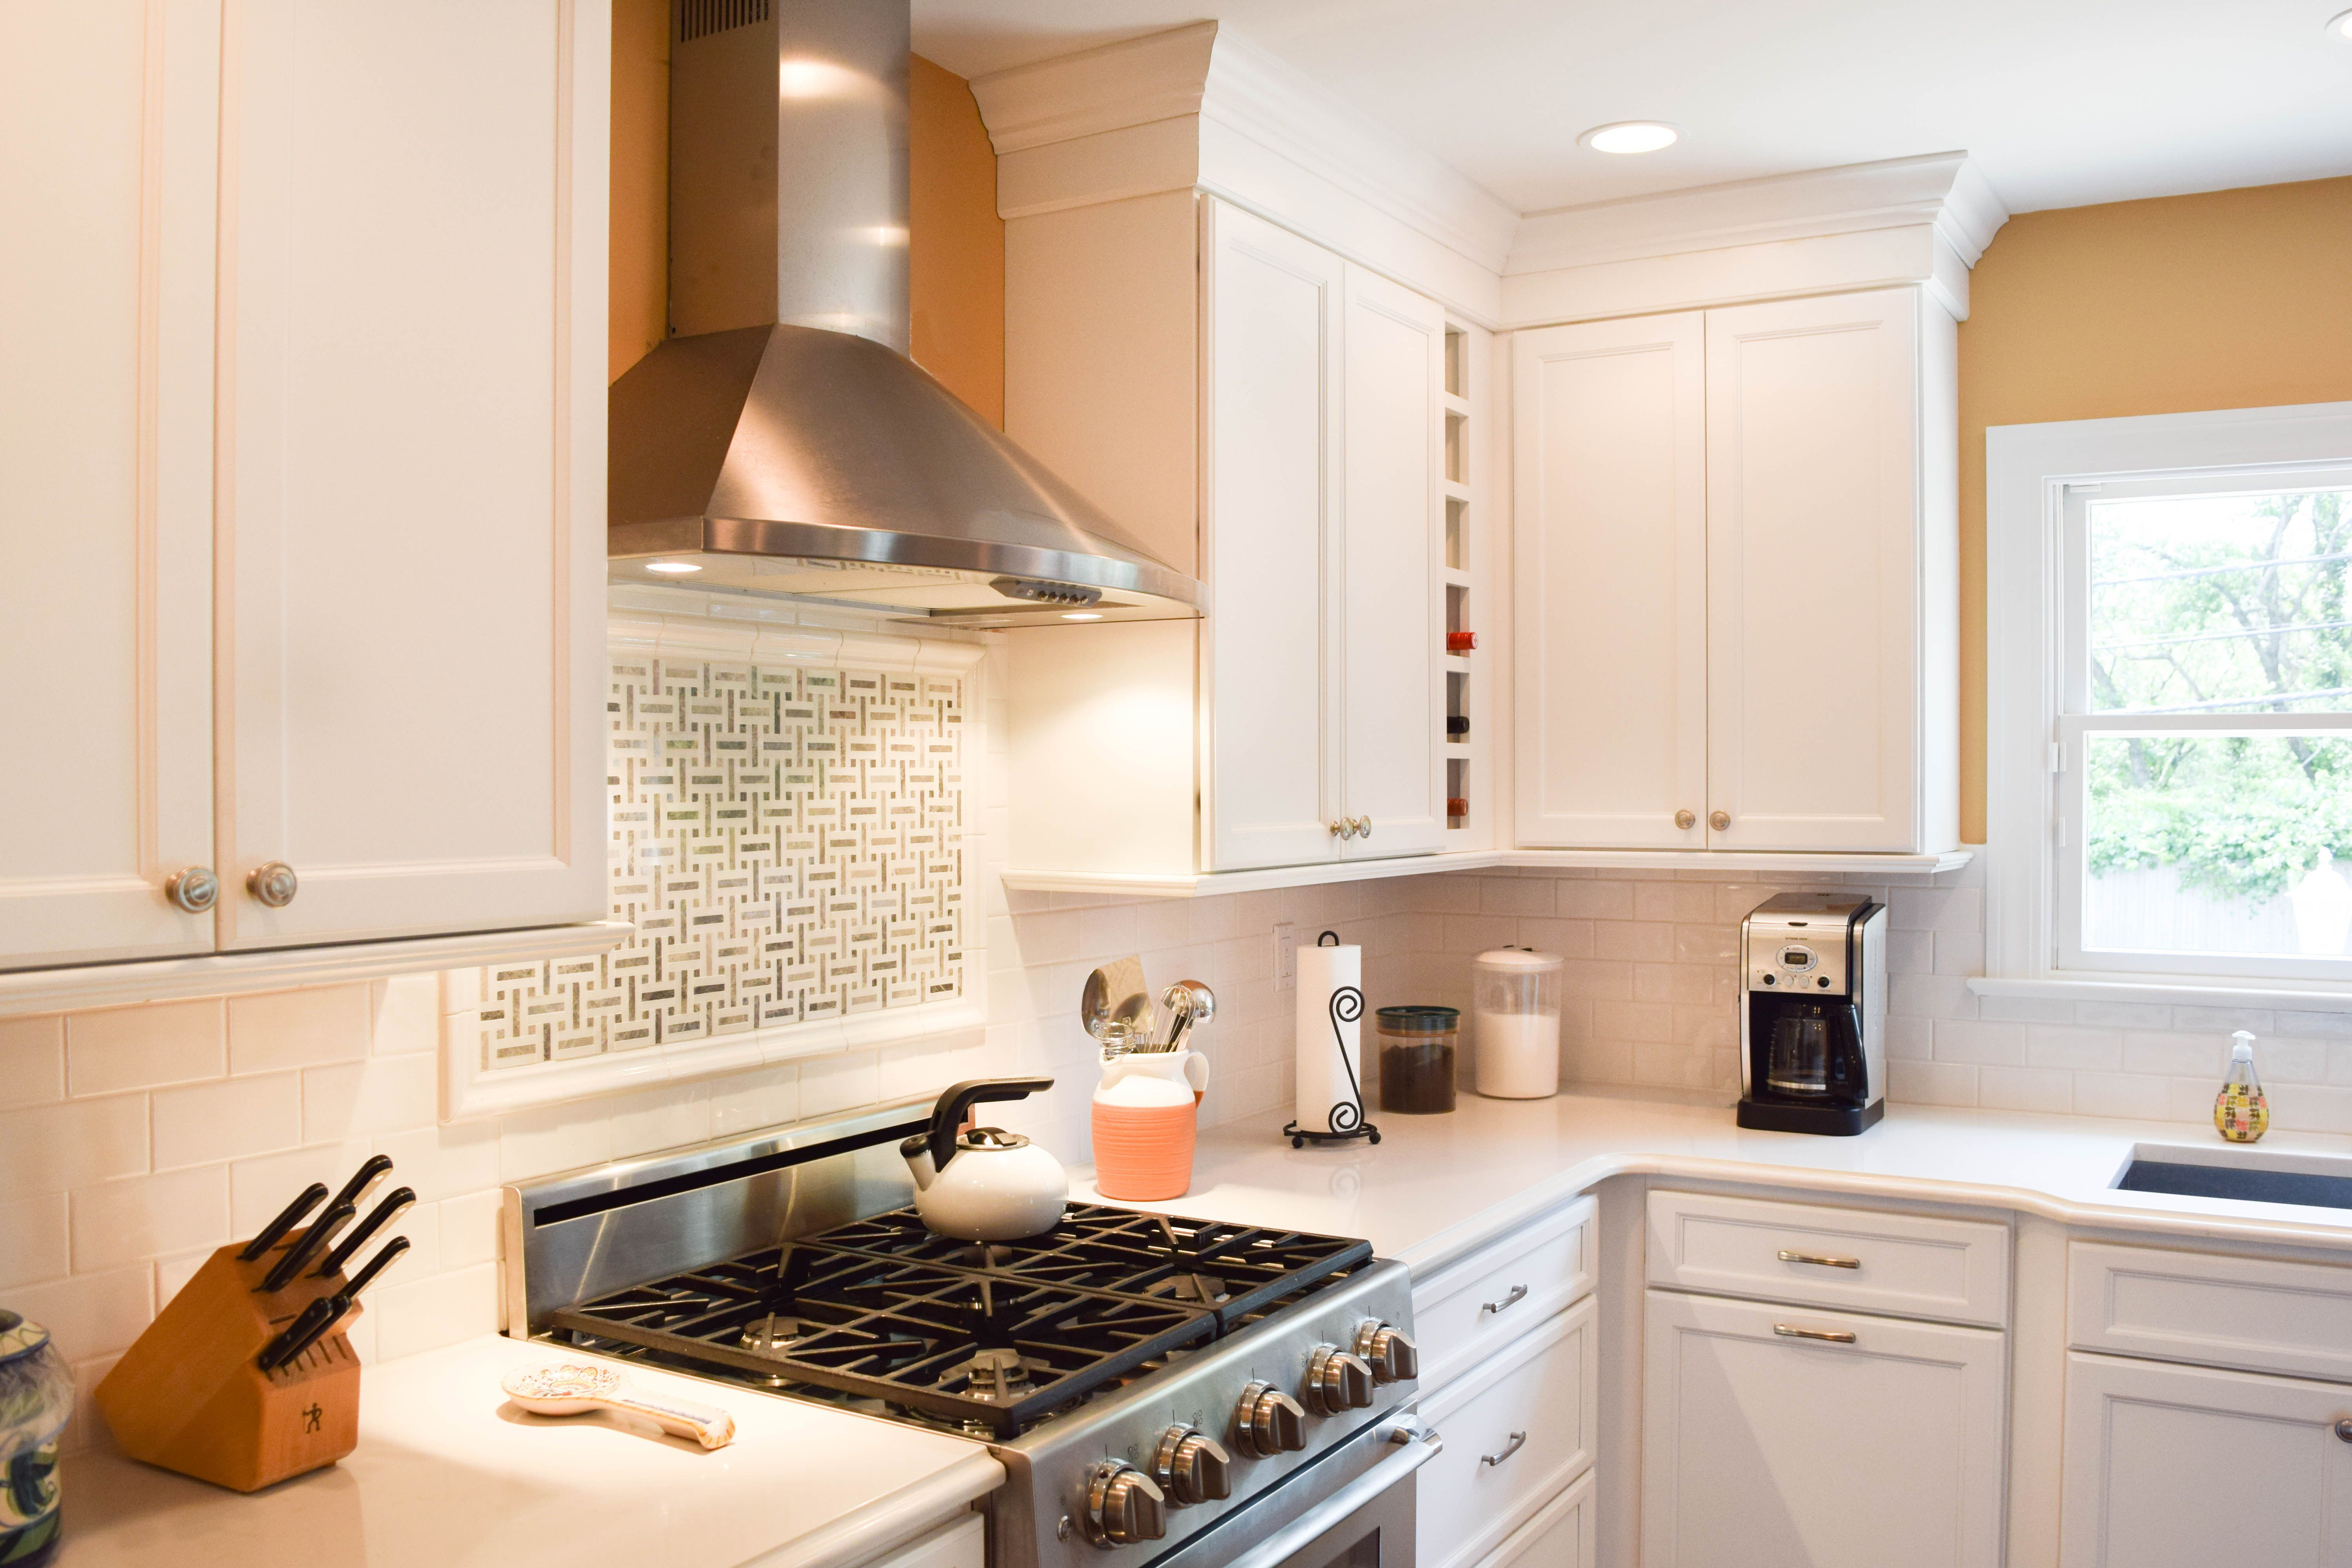 A Kitchen Remodel In Jericho New York Pops With Color And Class Lori Kurn A Designer With Coastal Cabinet Works Kitchen Remodel Cabinetry Custom Cabinets